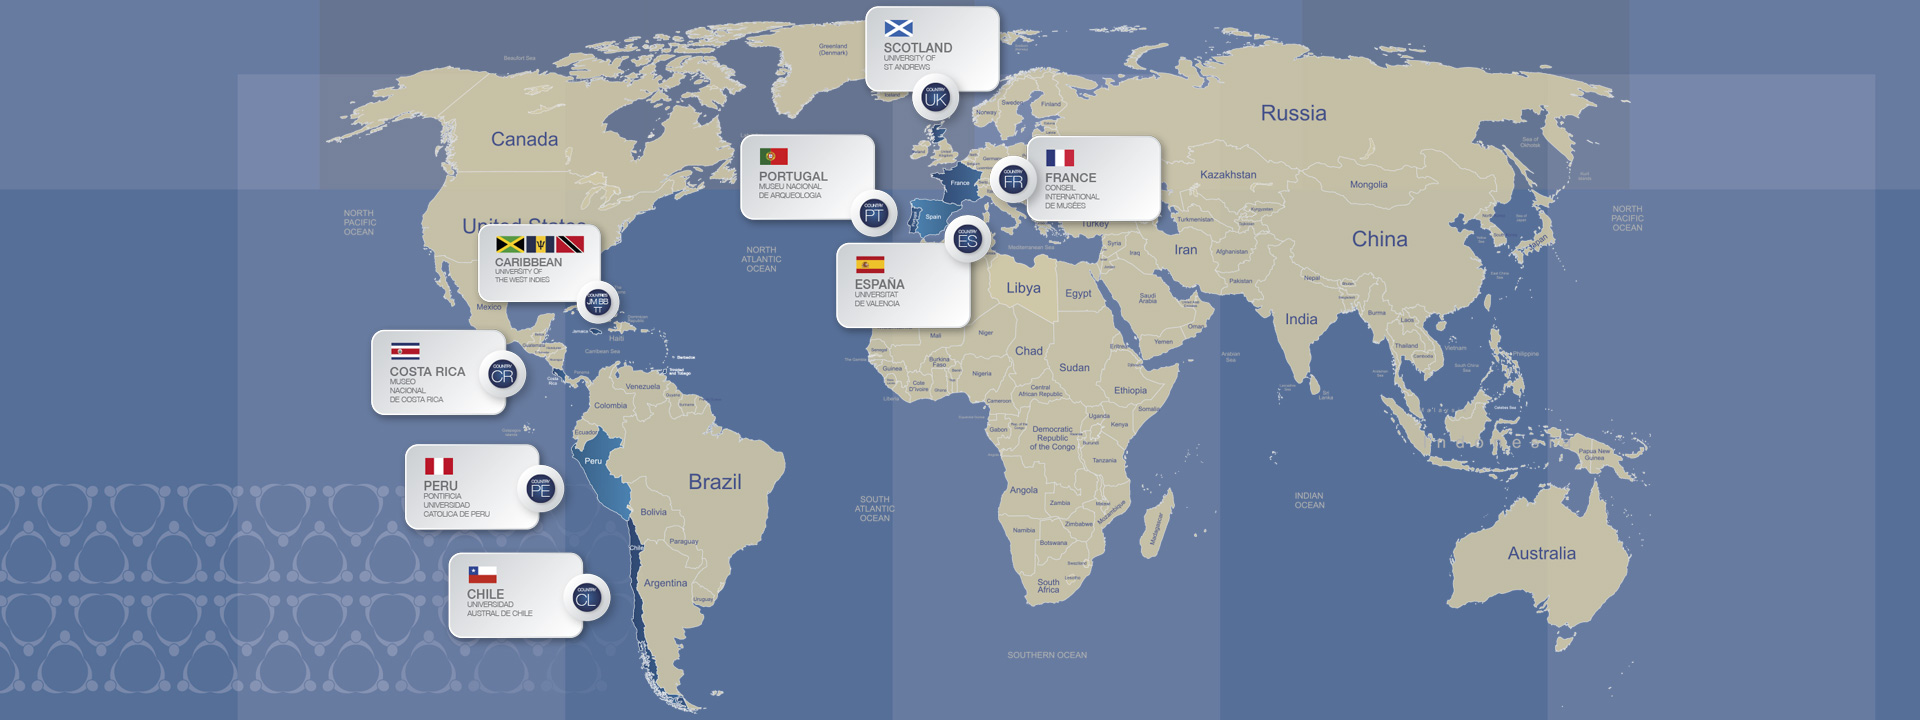 Eulac Museums partners map